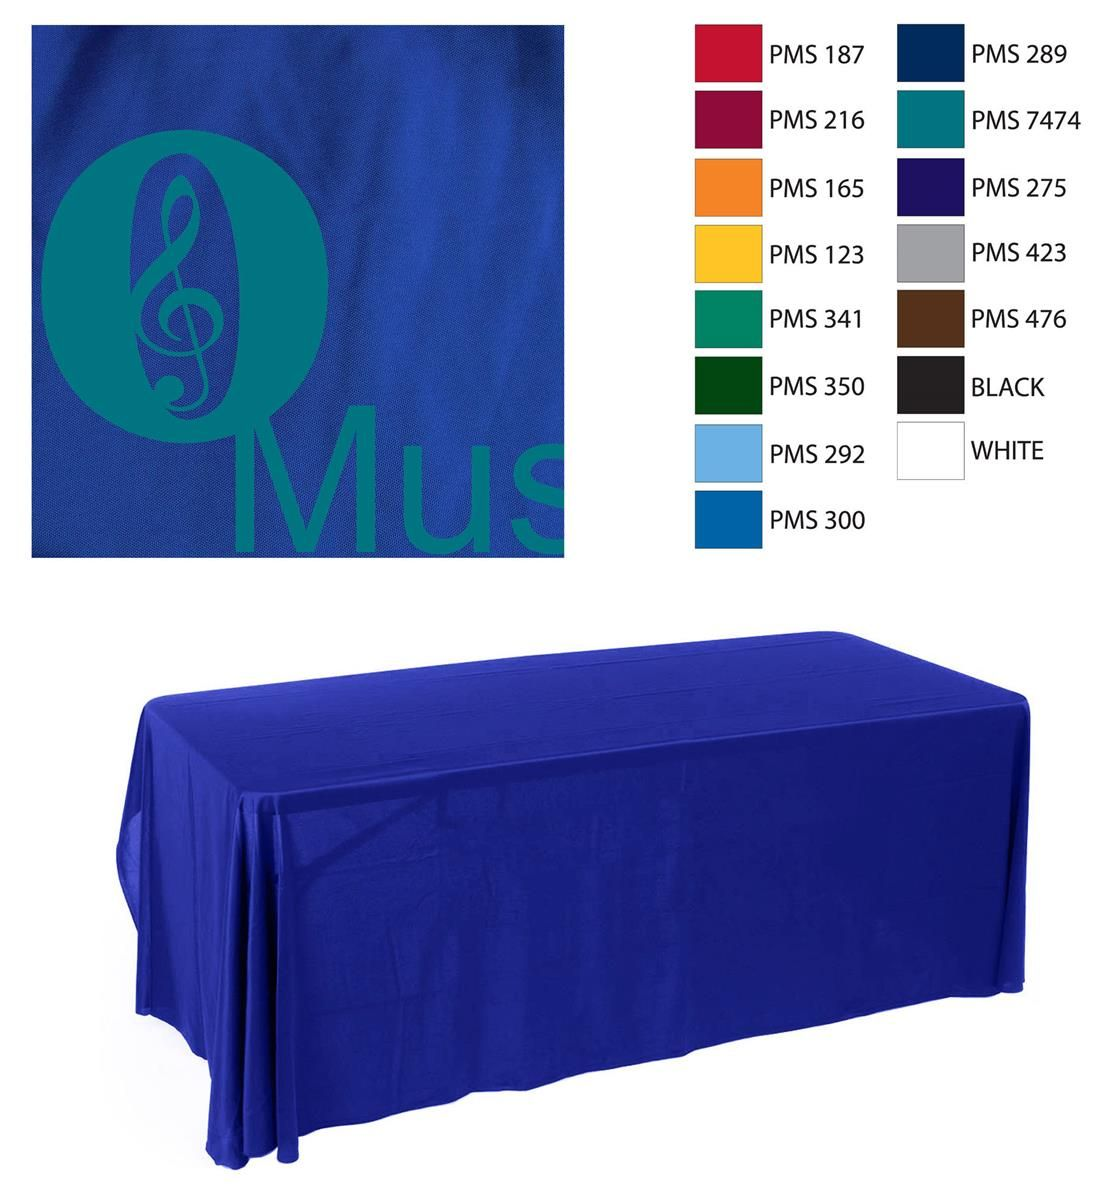 6' Table Cloth with 1 Color Imprint - Blue